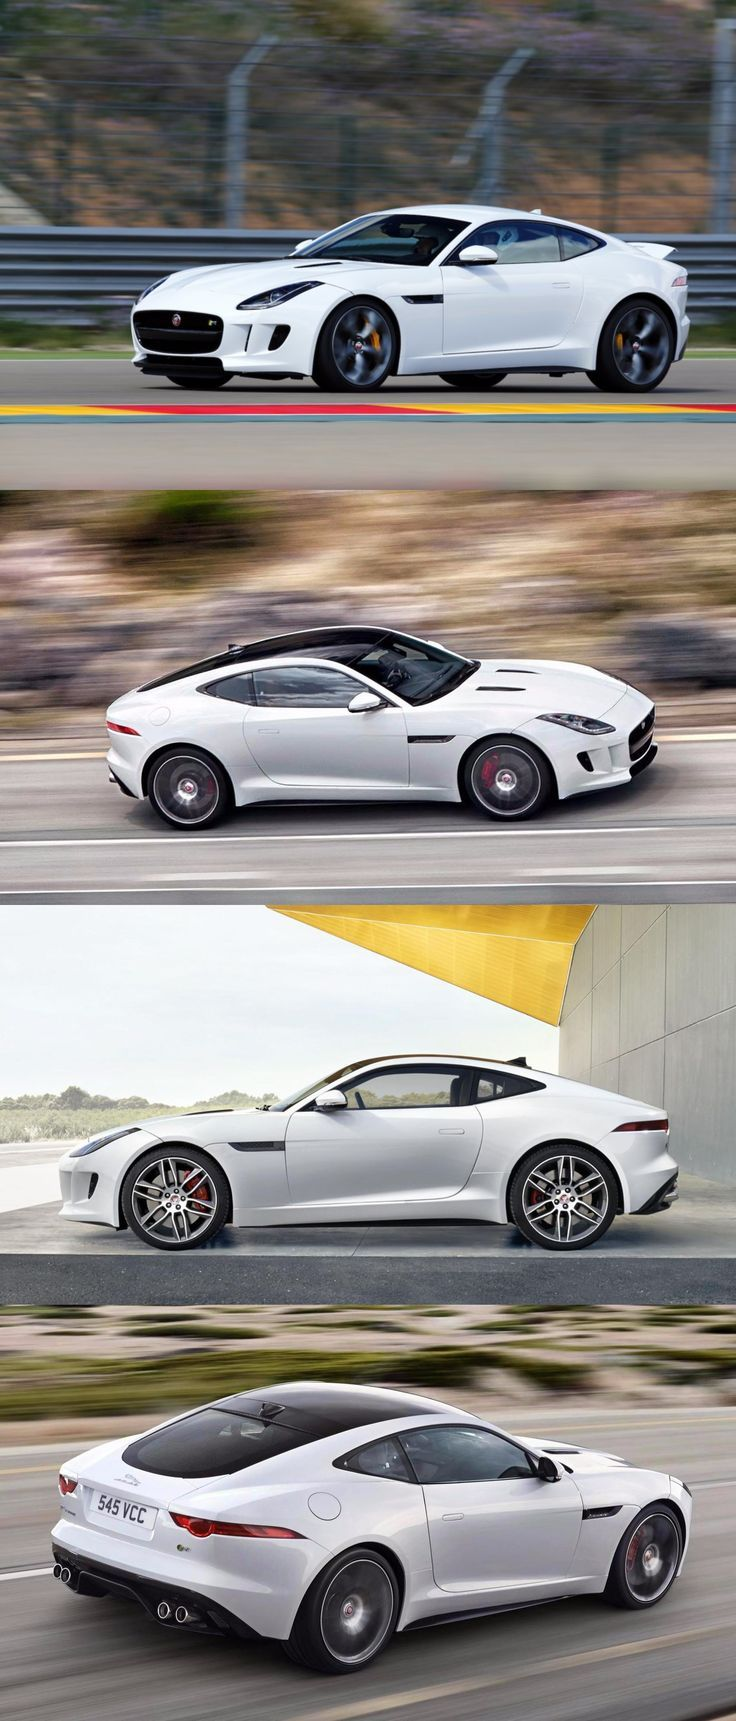 Has launched its luxury coupe runabout jaguar f type coupe which comes with 340 hp supercharged petrol engine